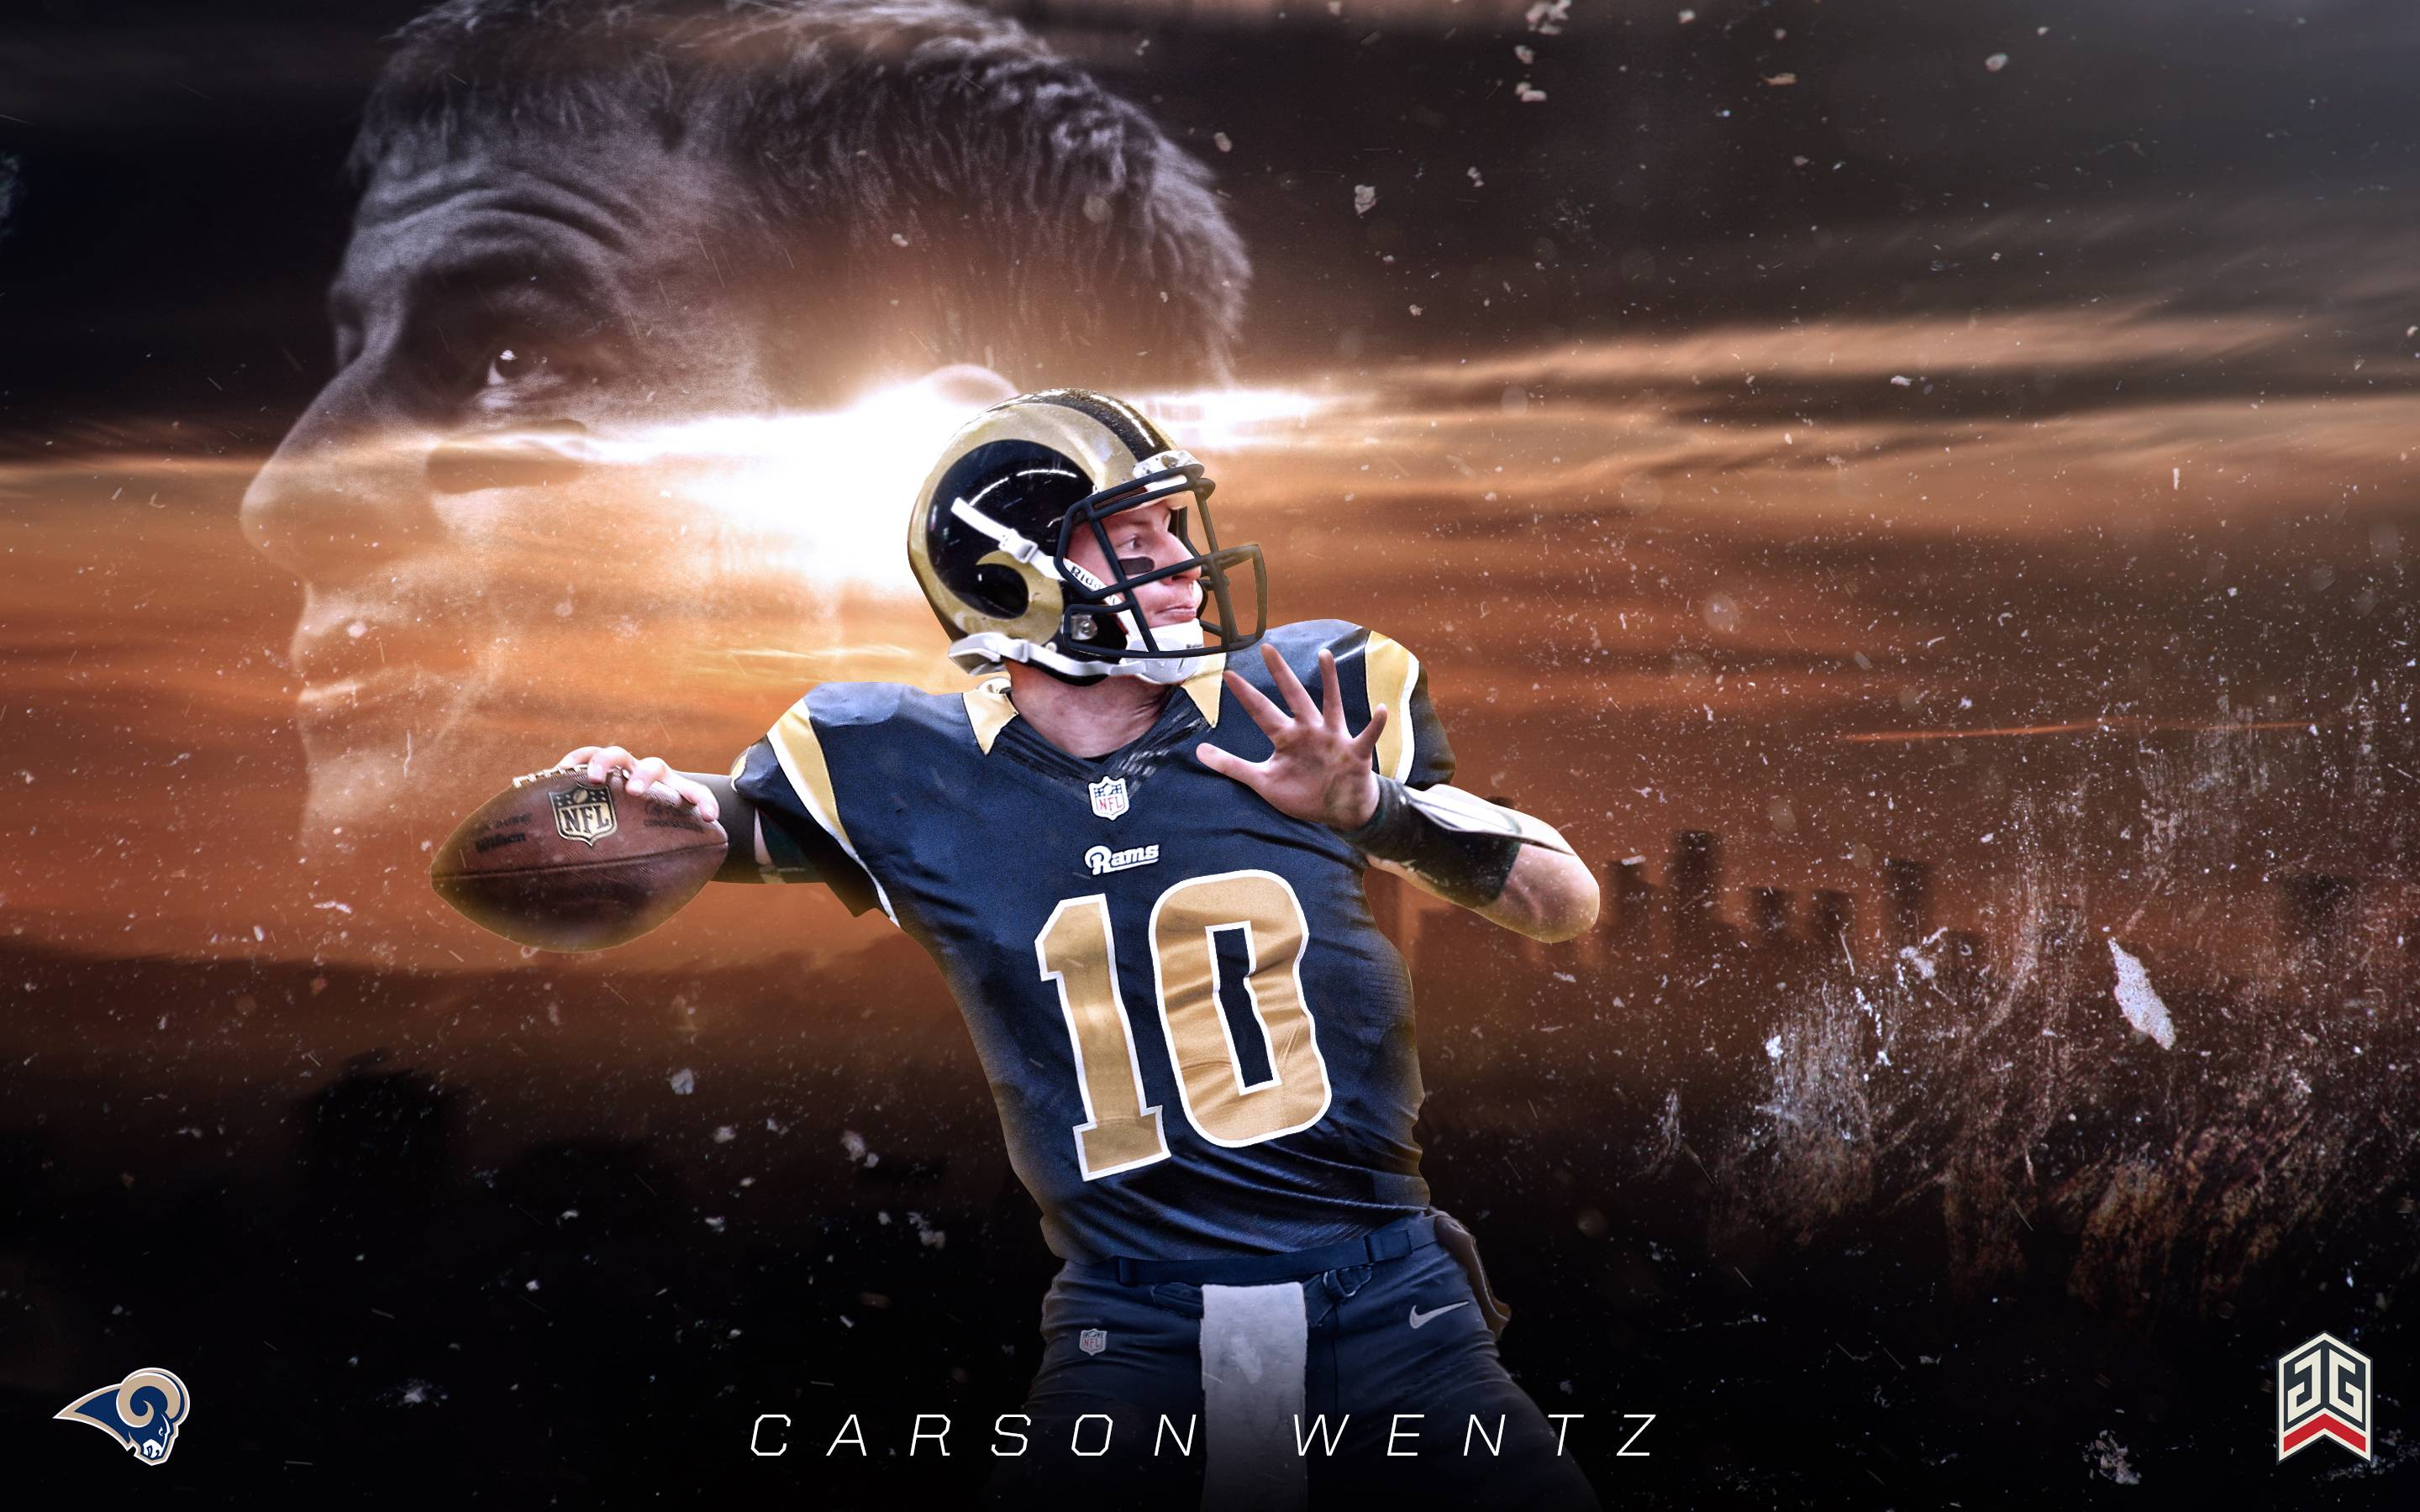 Carson Wentz LA Rams wallpaper : LosAngelesRams